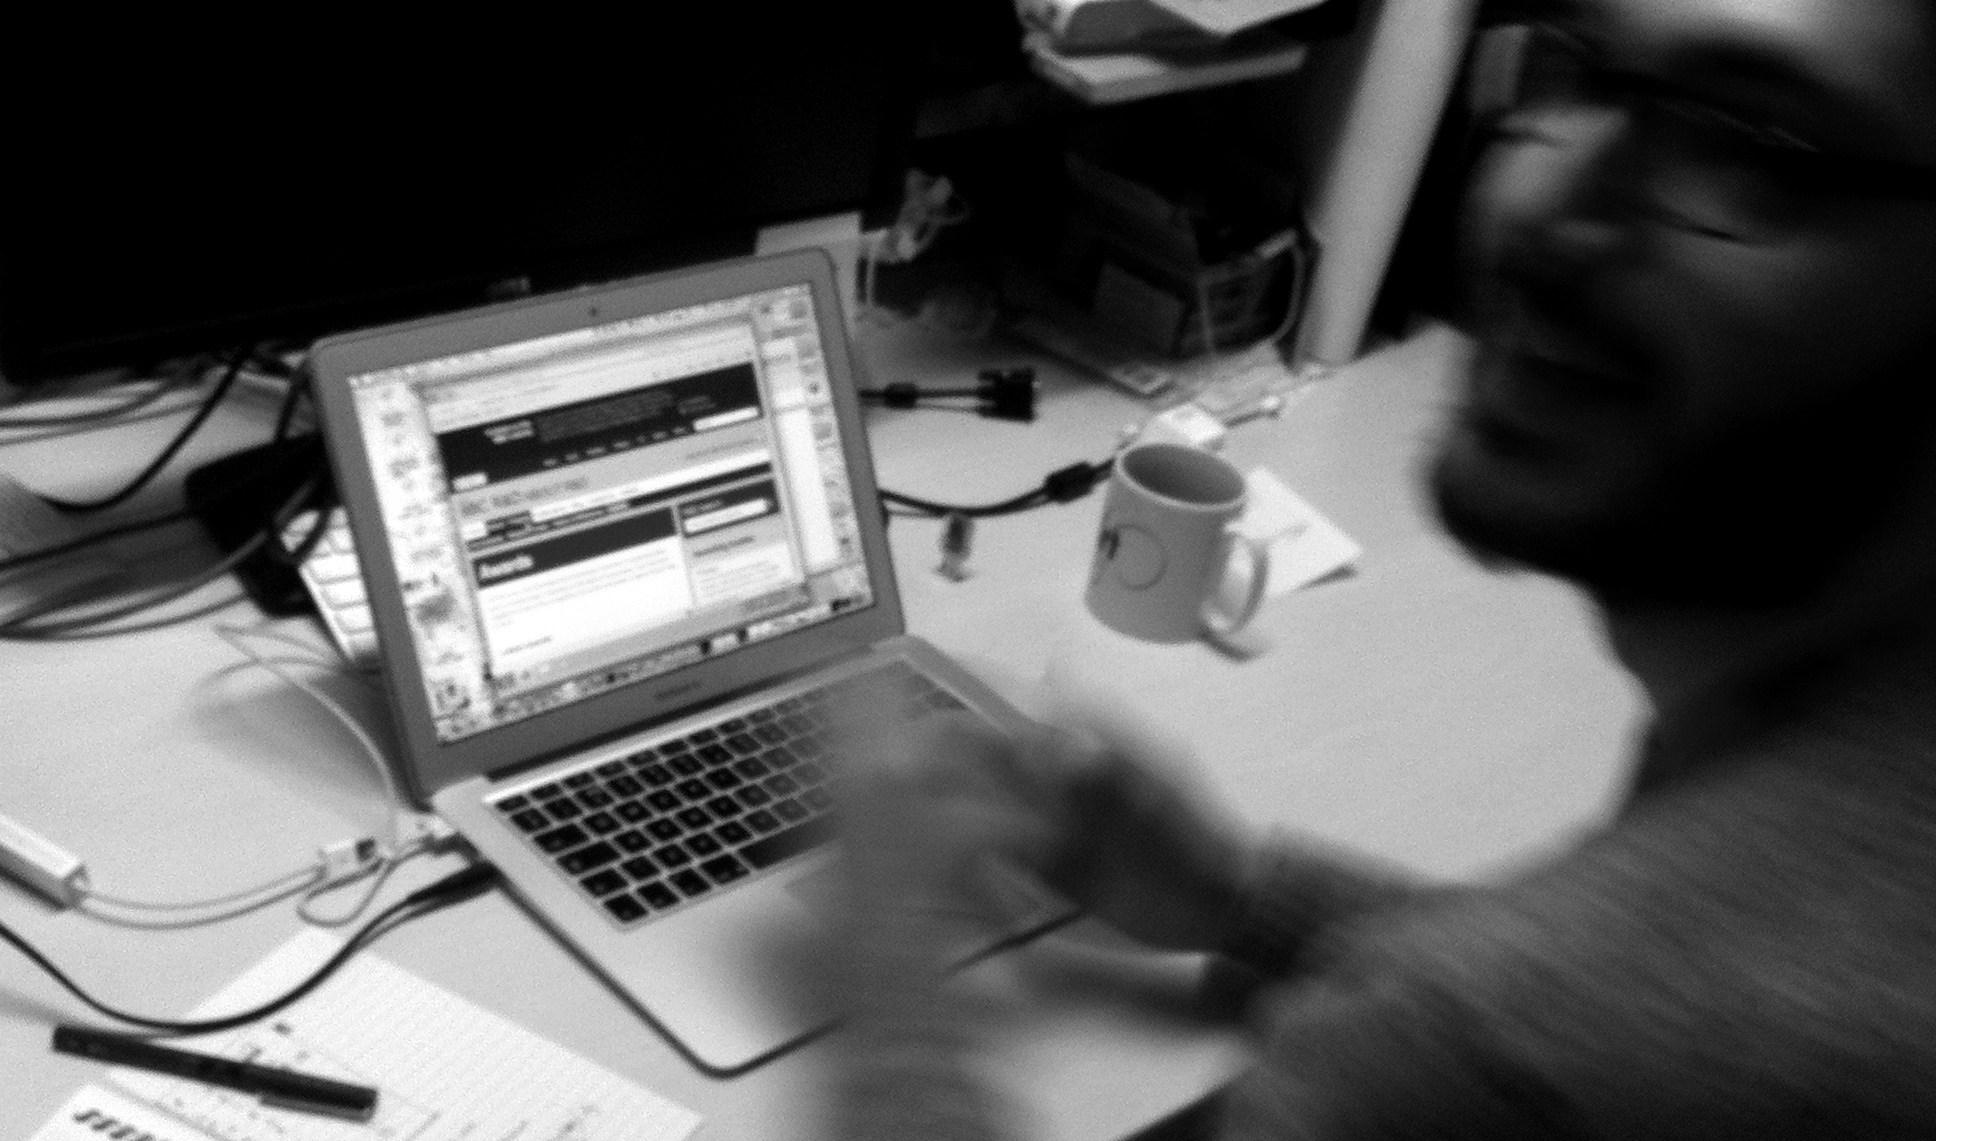 Photo: working on the R&D website